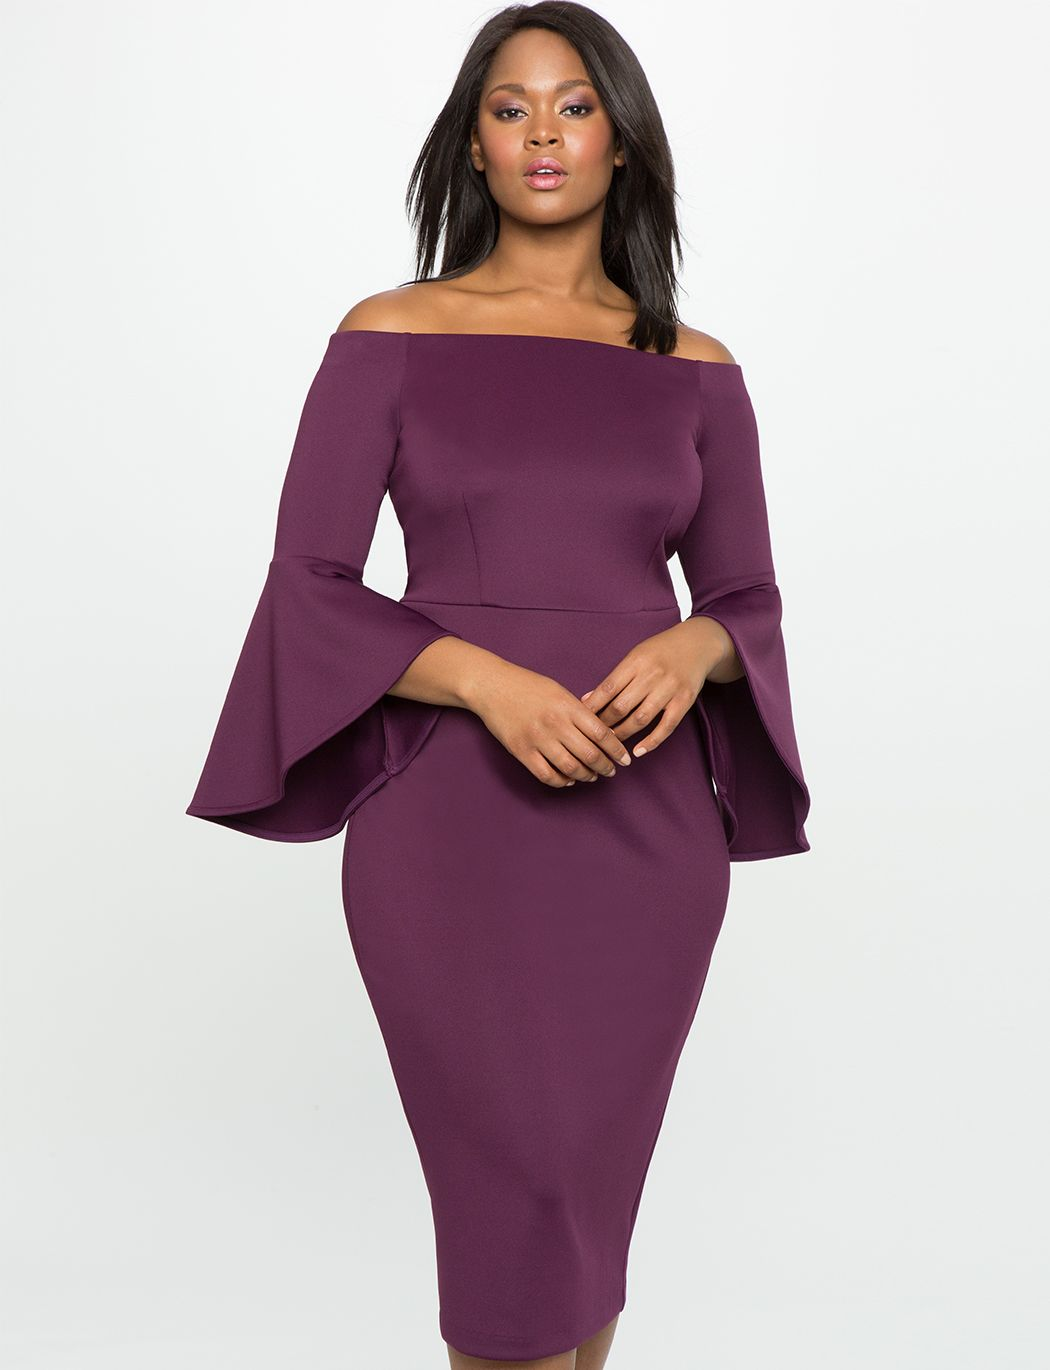 Studio Off the Shoulder Flare Sleeve Dress  79b77e9eb82d